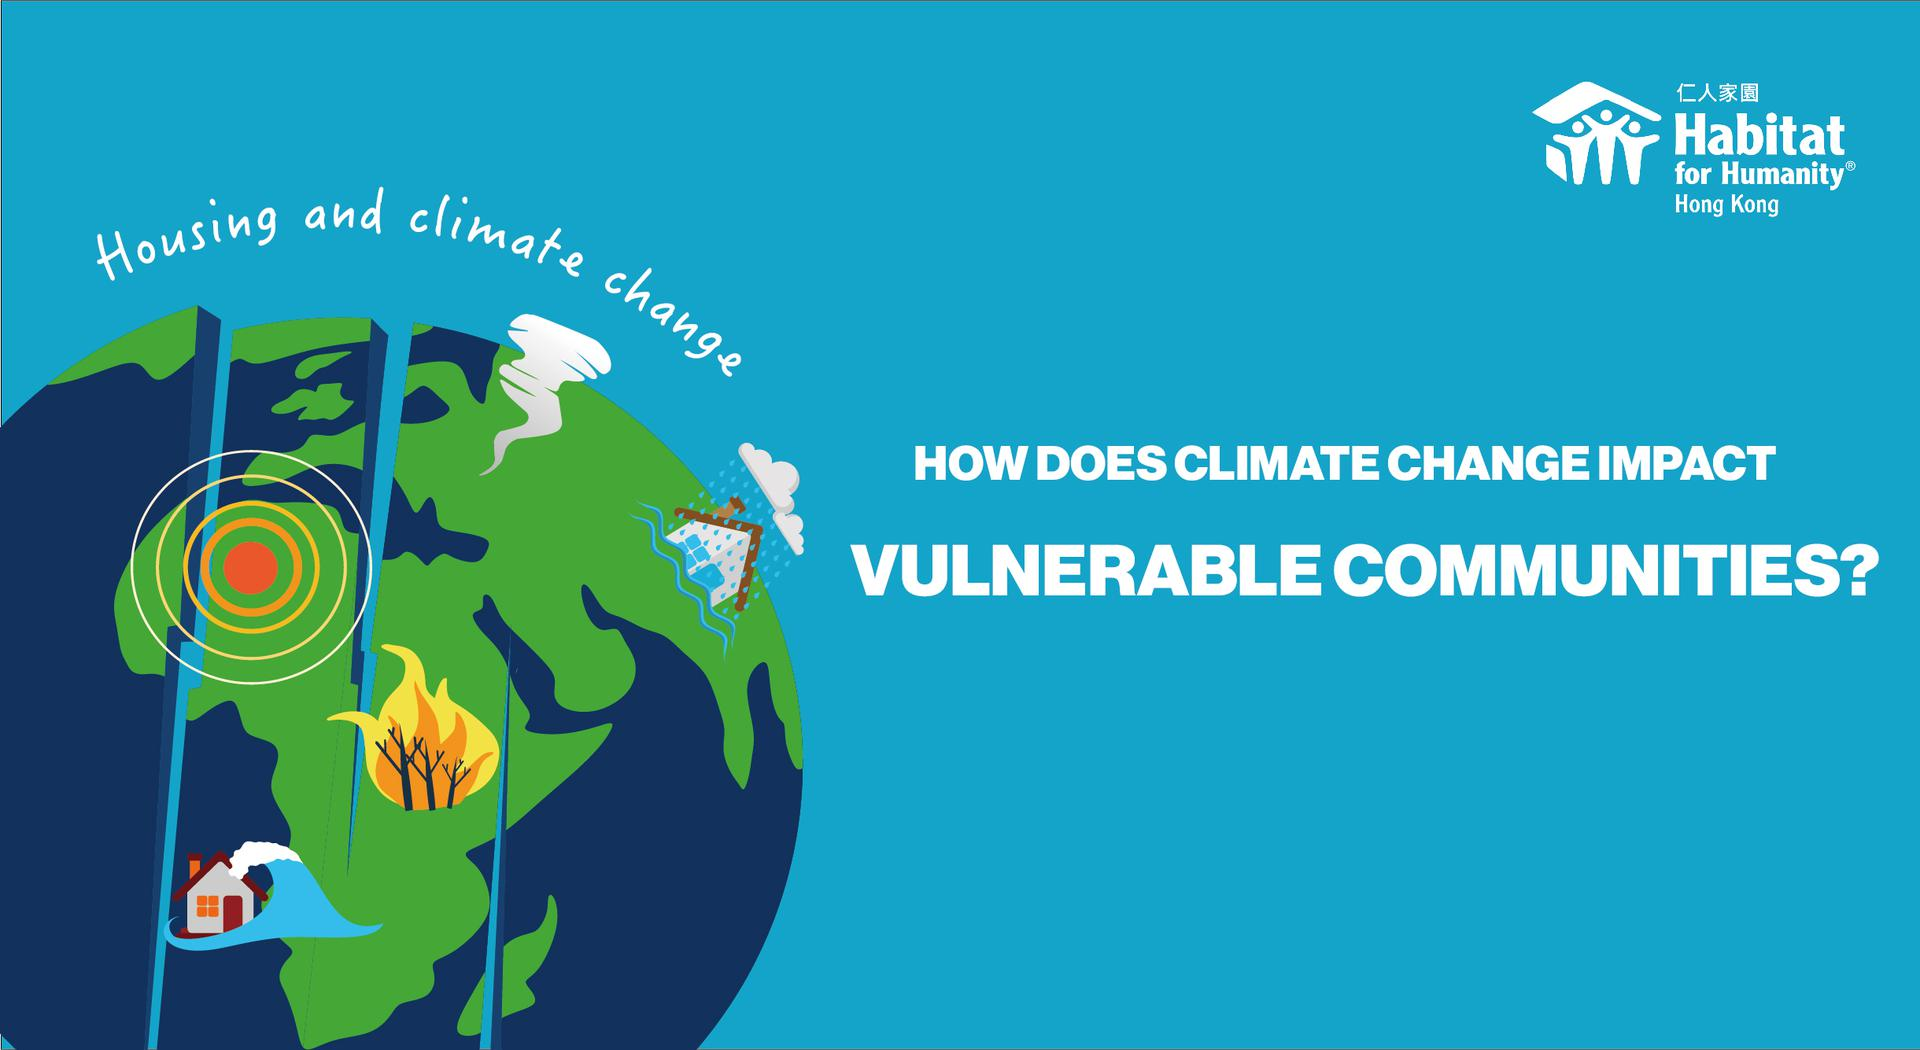 How does climate change impact vulnerable communities?